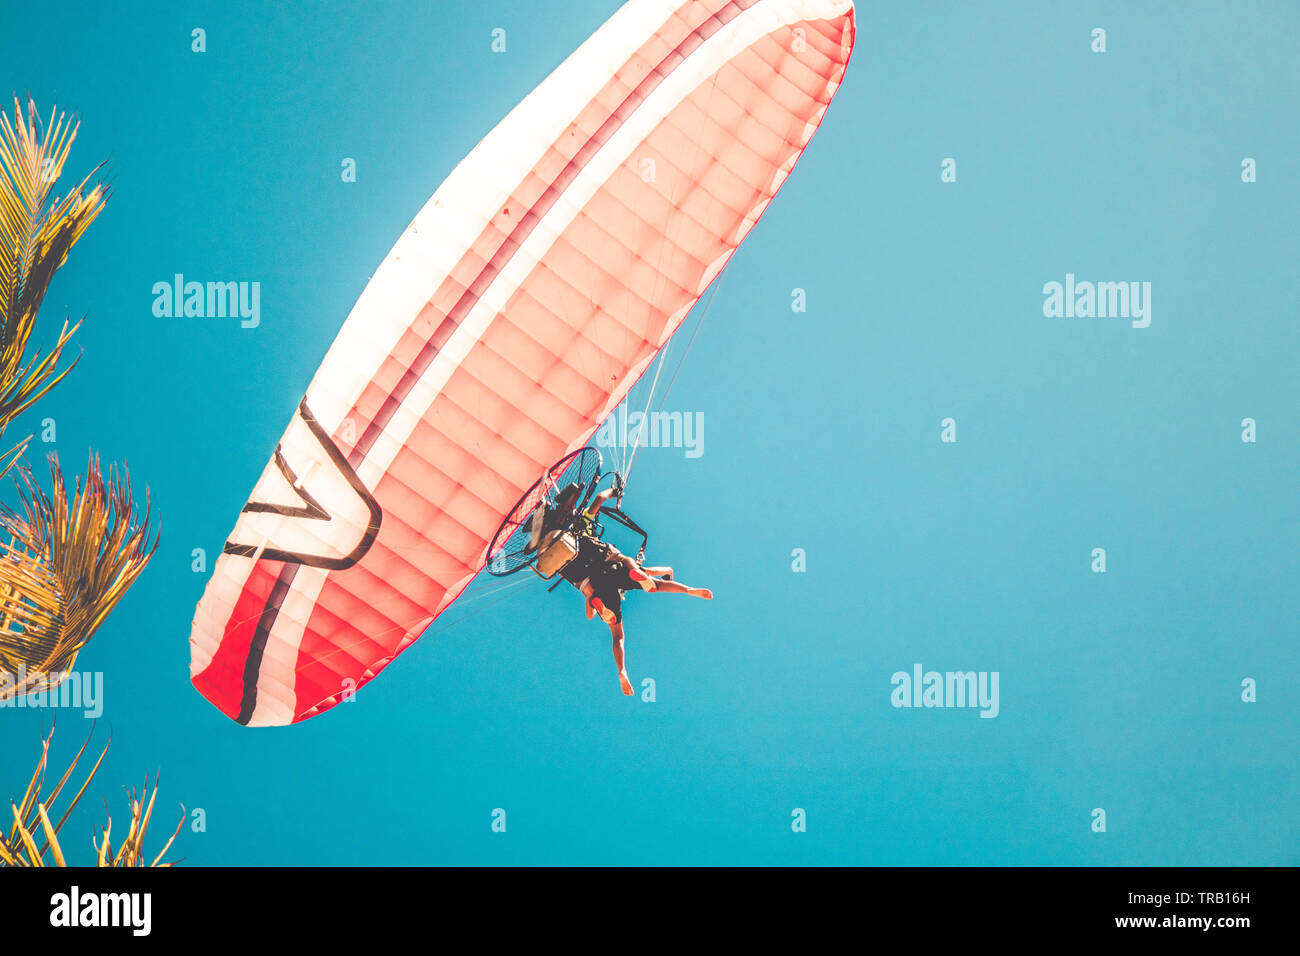 Water Paragliding Stock Photos & Water Paragliding Stock